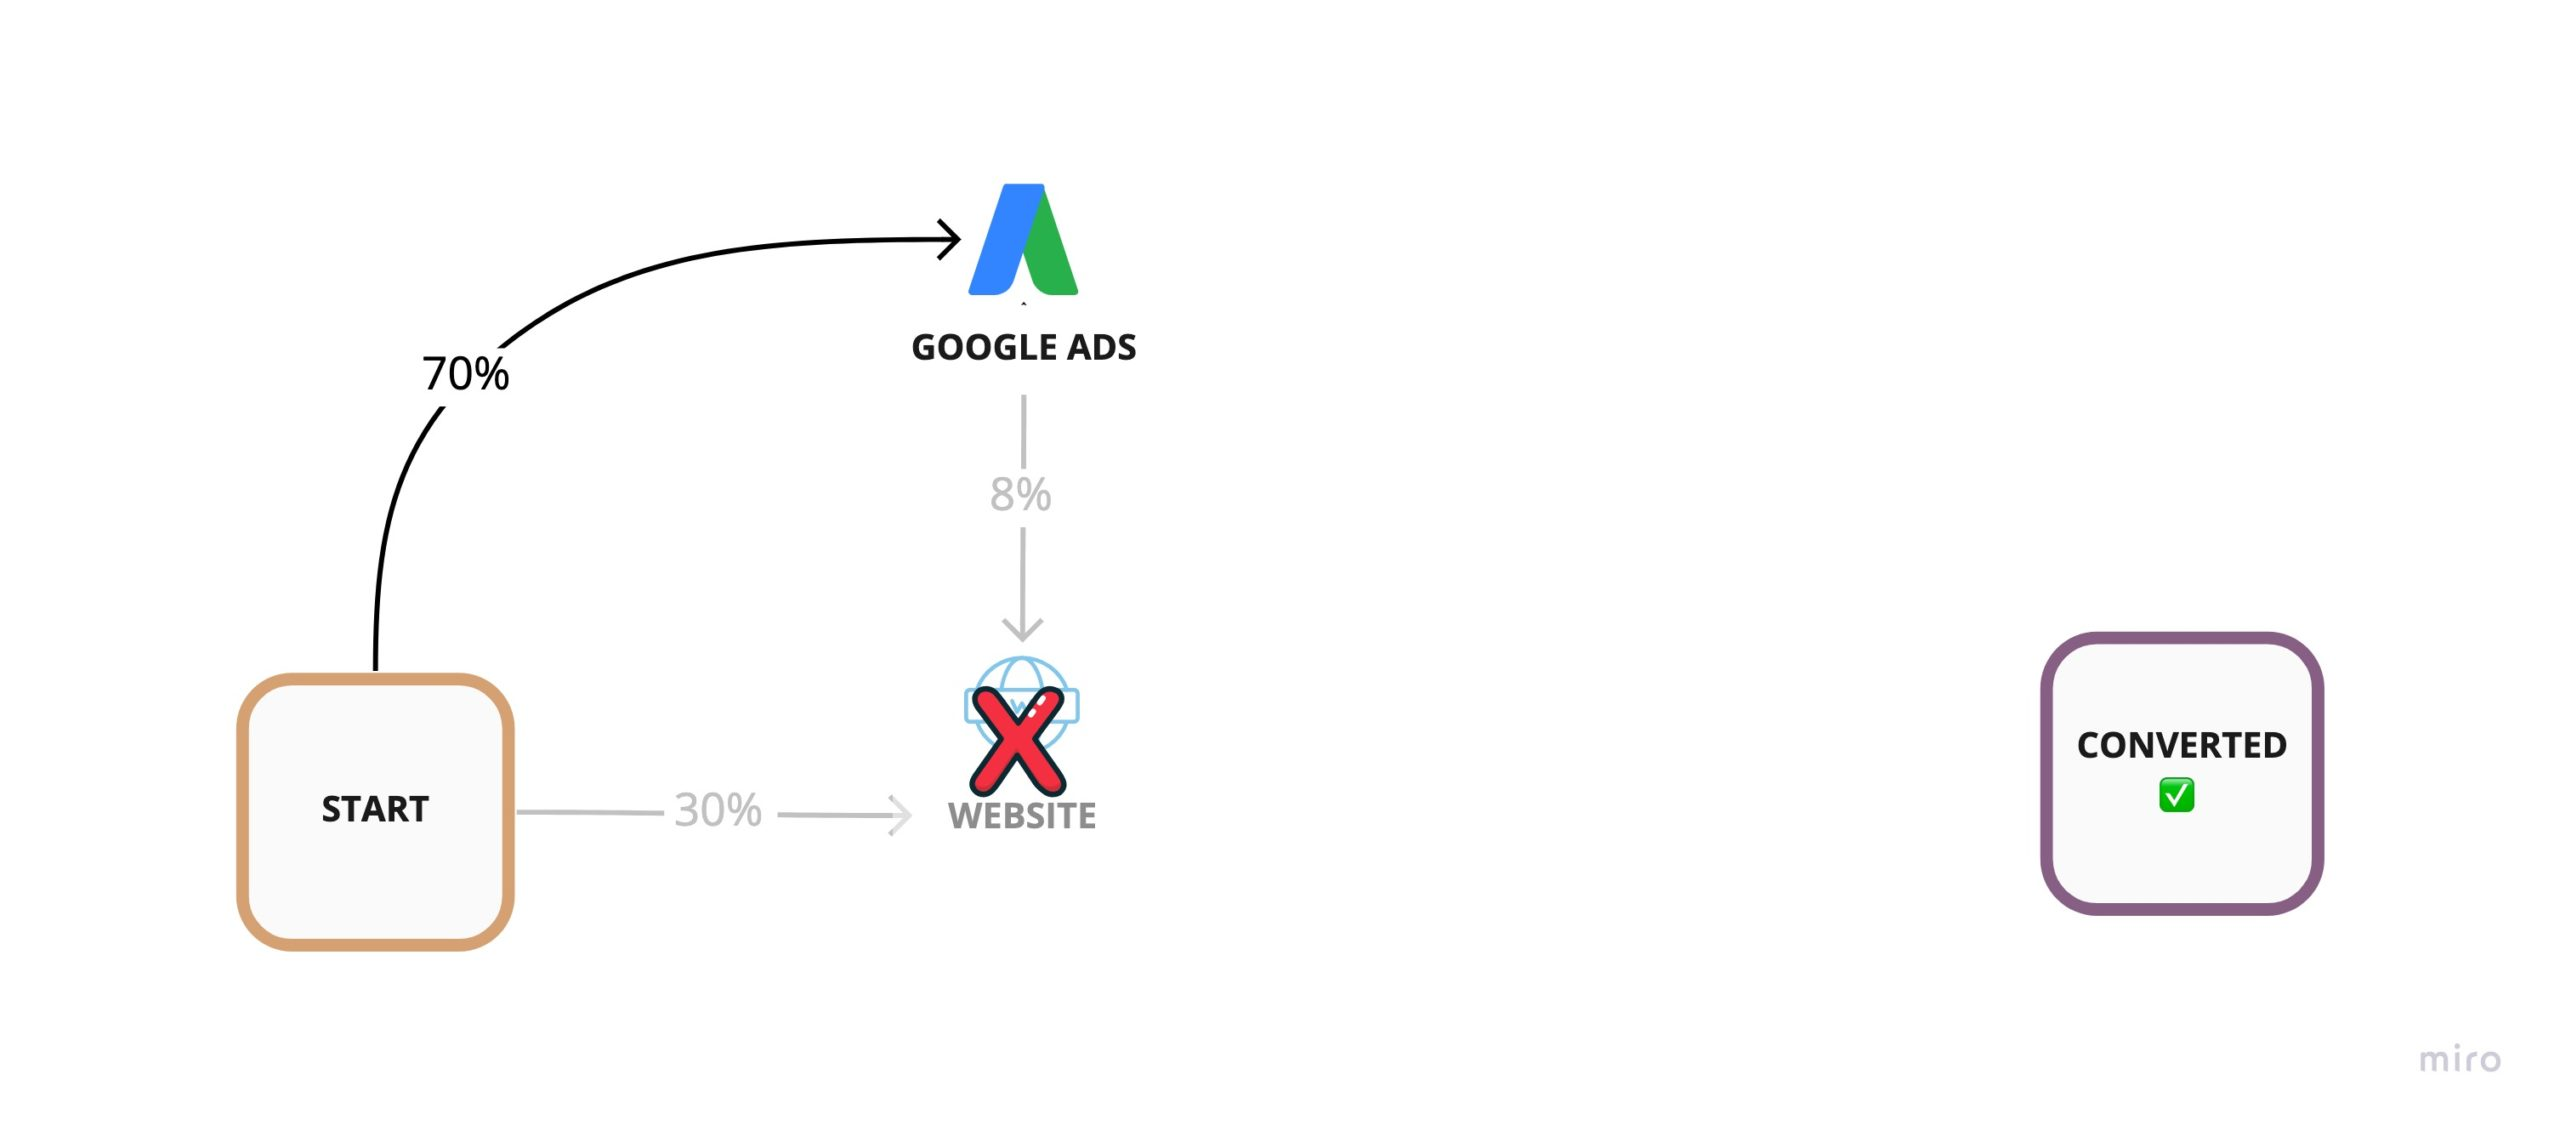 Hypothetical removal of the Website from our customer journey